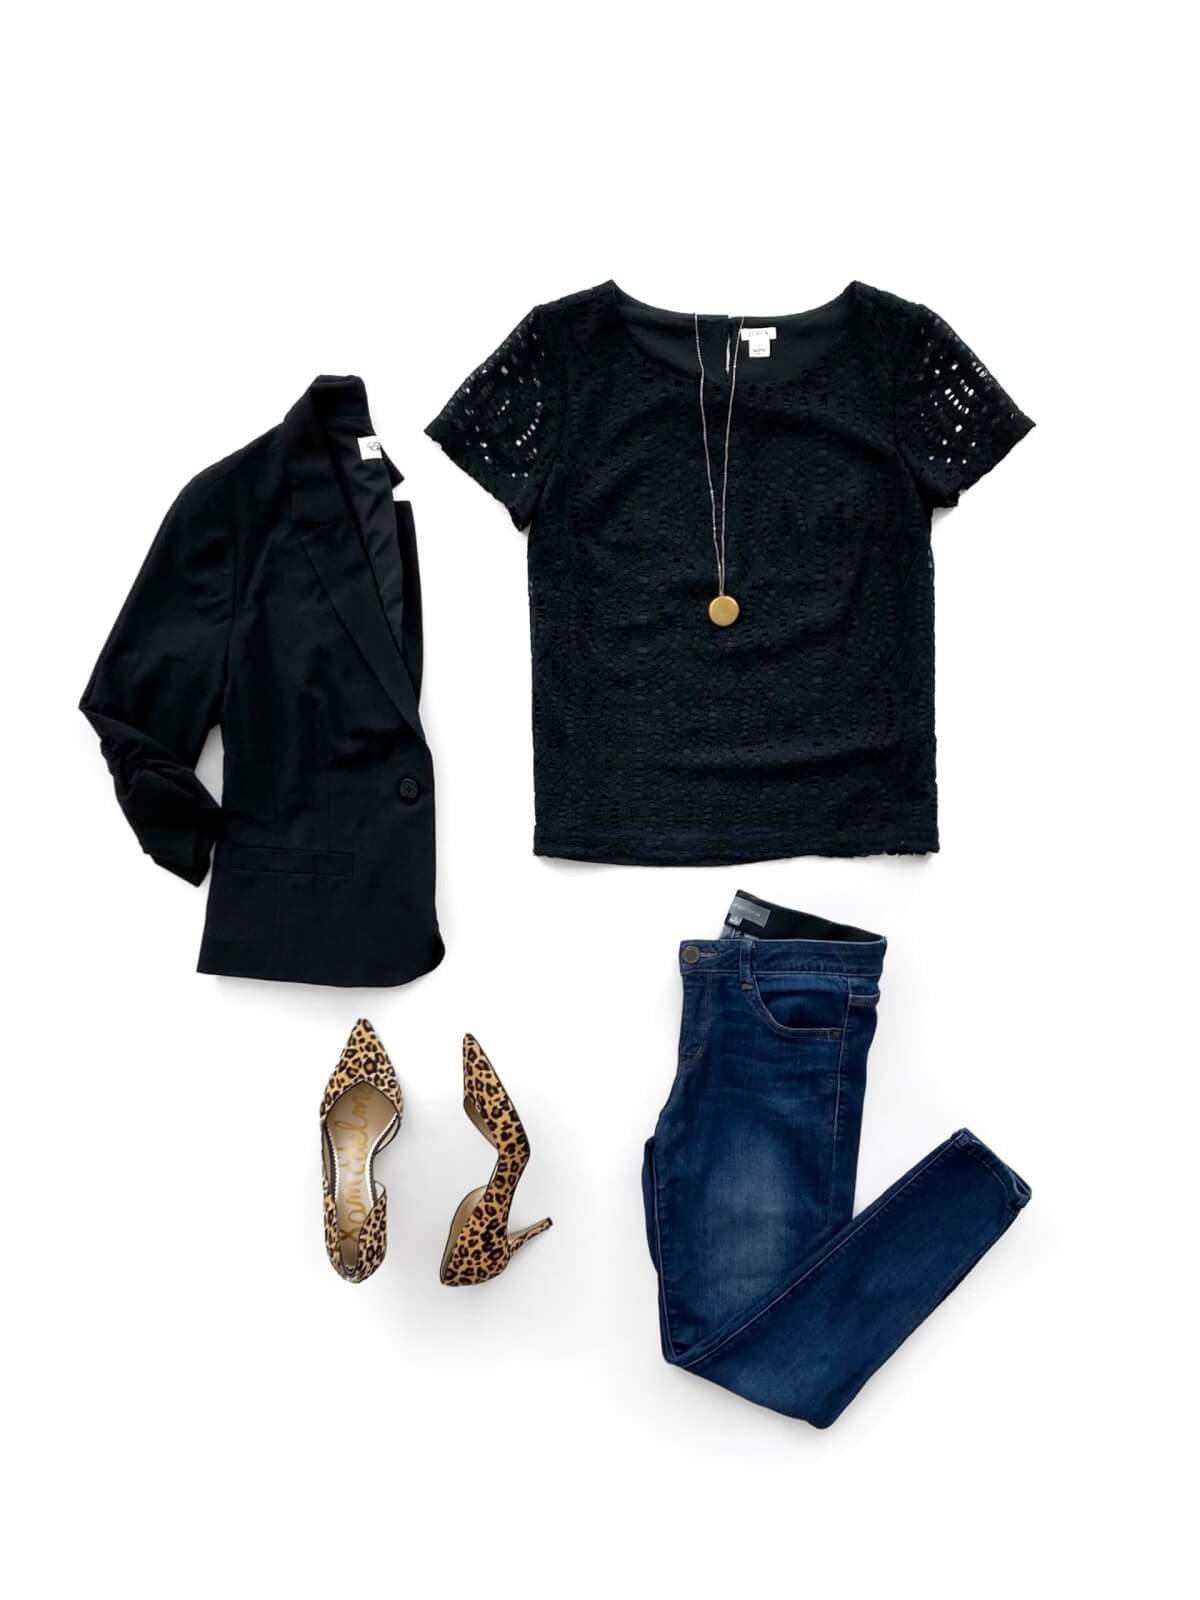 Elevated Casual Outfit flat lay: solid-colored top black + black blazer + blue jeans + leopard heels + gold pendant